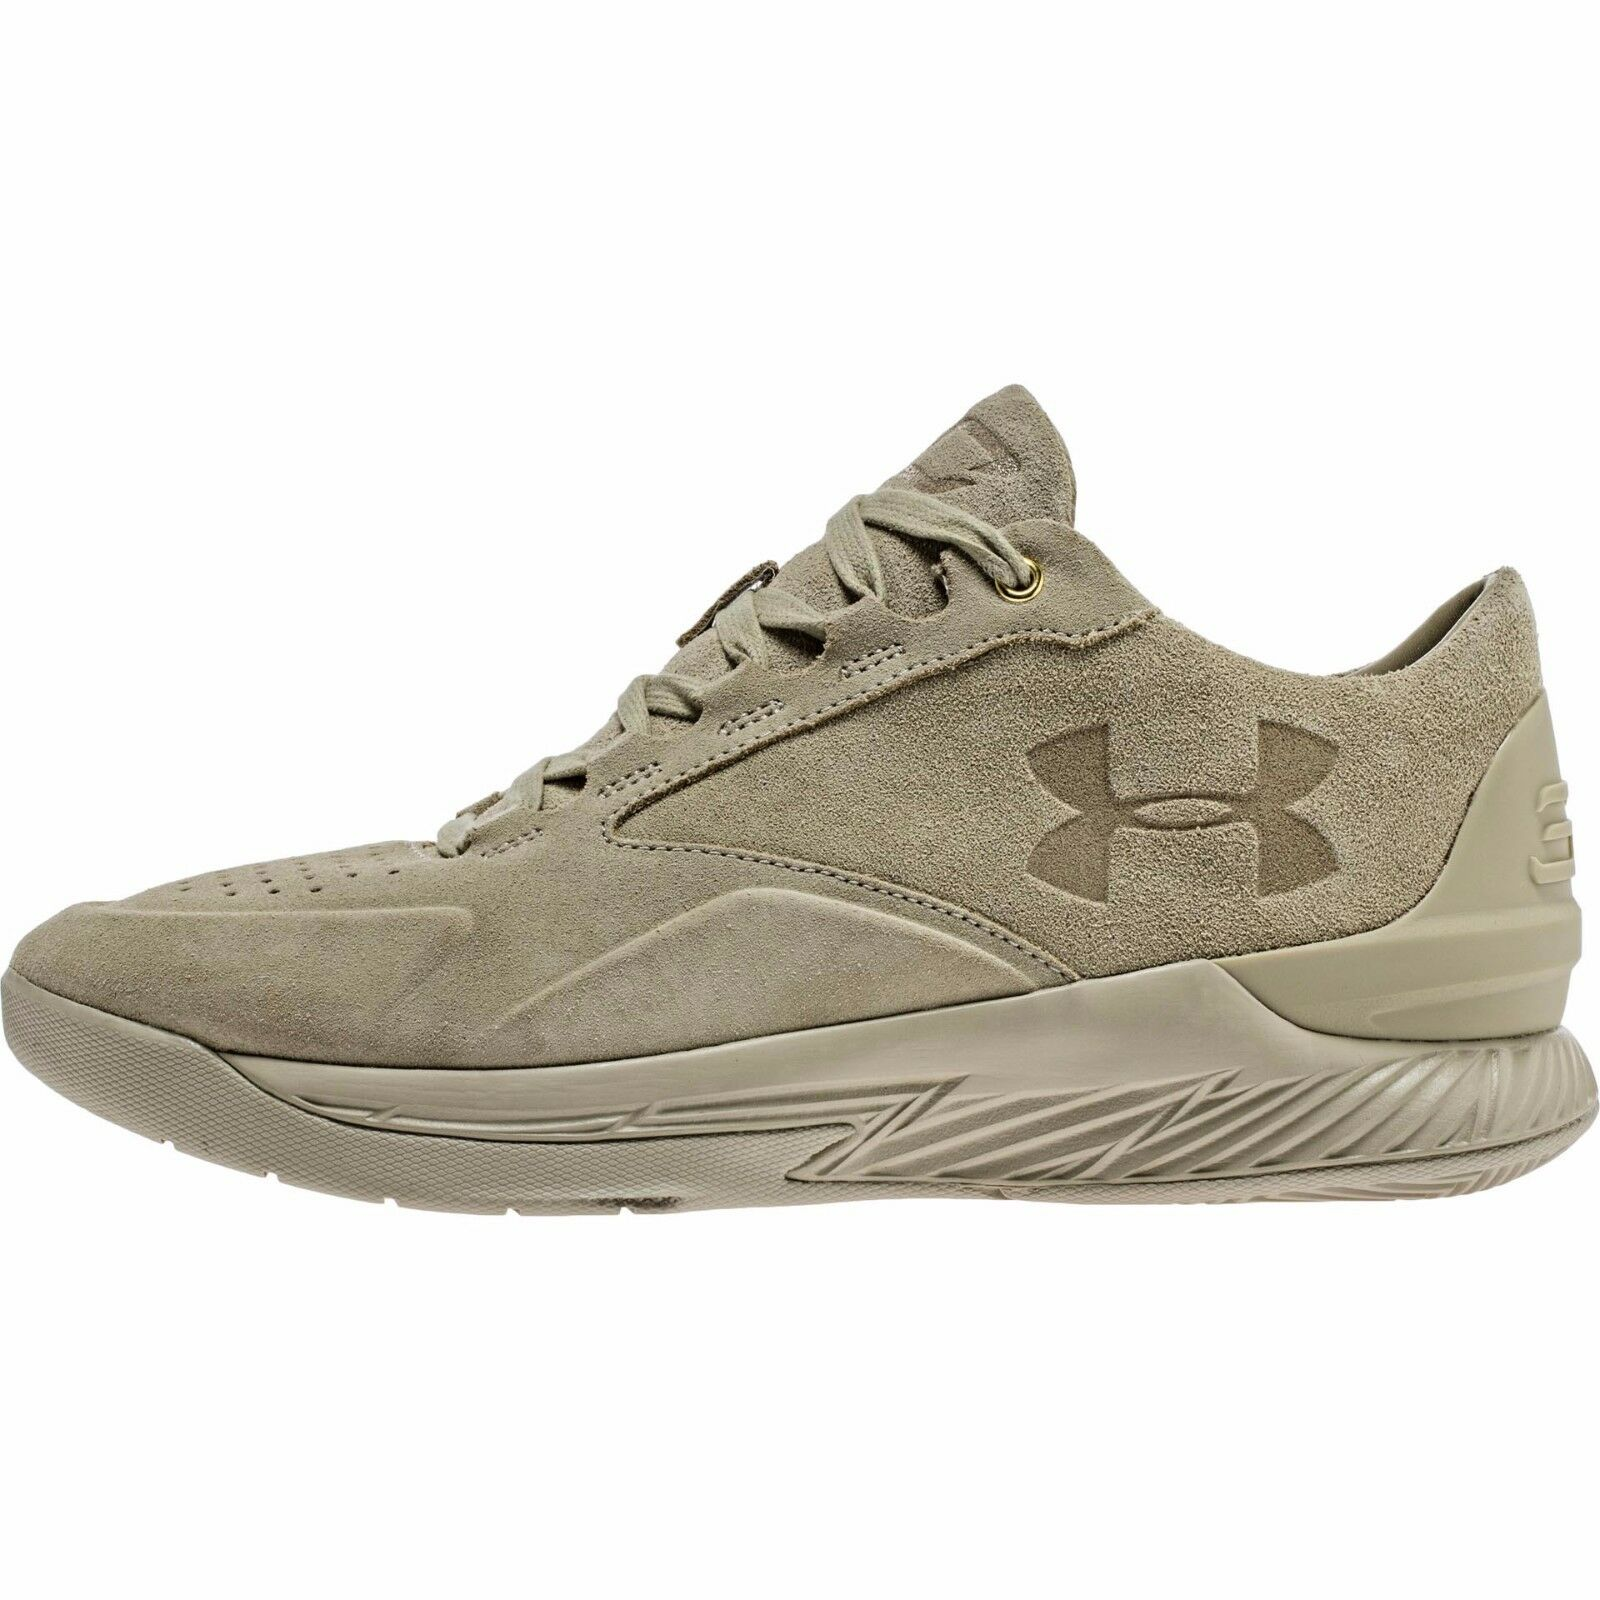 Under Armour UA Steph Curry 1 Low Suede SZ 8 Desert Desert 1298702-290